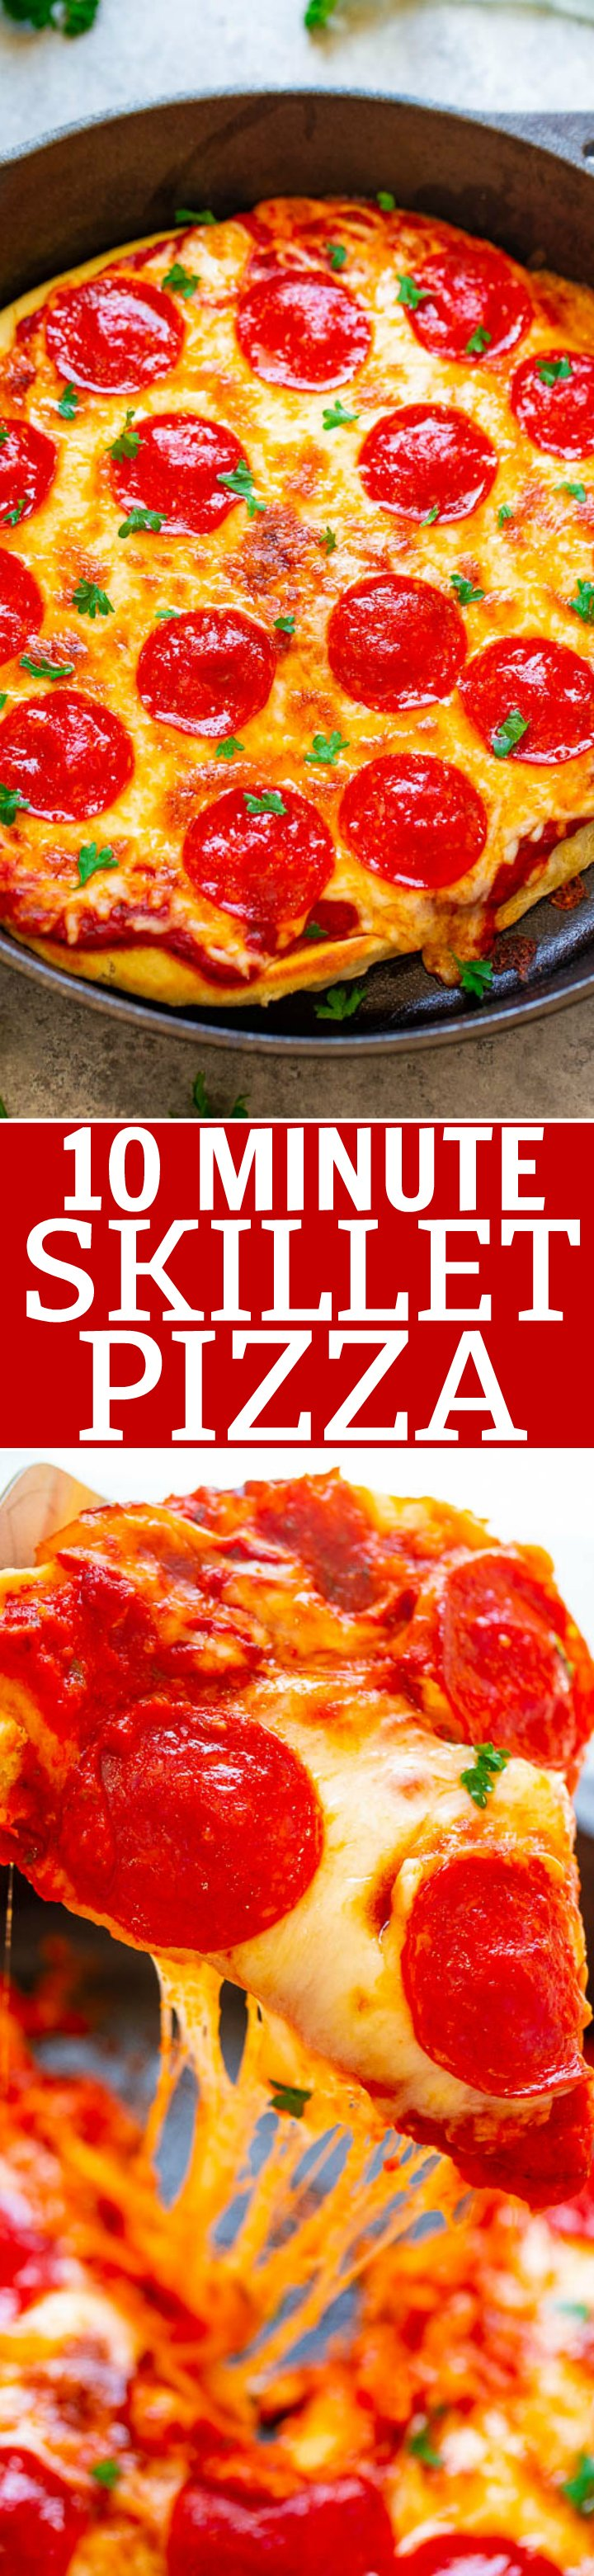 10-Minute Skillet Pizza - A FAST, EASY, and foolproof recipe to make pizza at home in 10 minutes!! Don't call for delivery when you can make this pizza in minutes! Such IRRESISTIBLE cheesy goodness!!